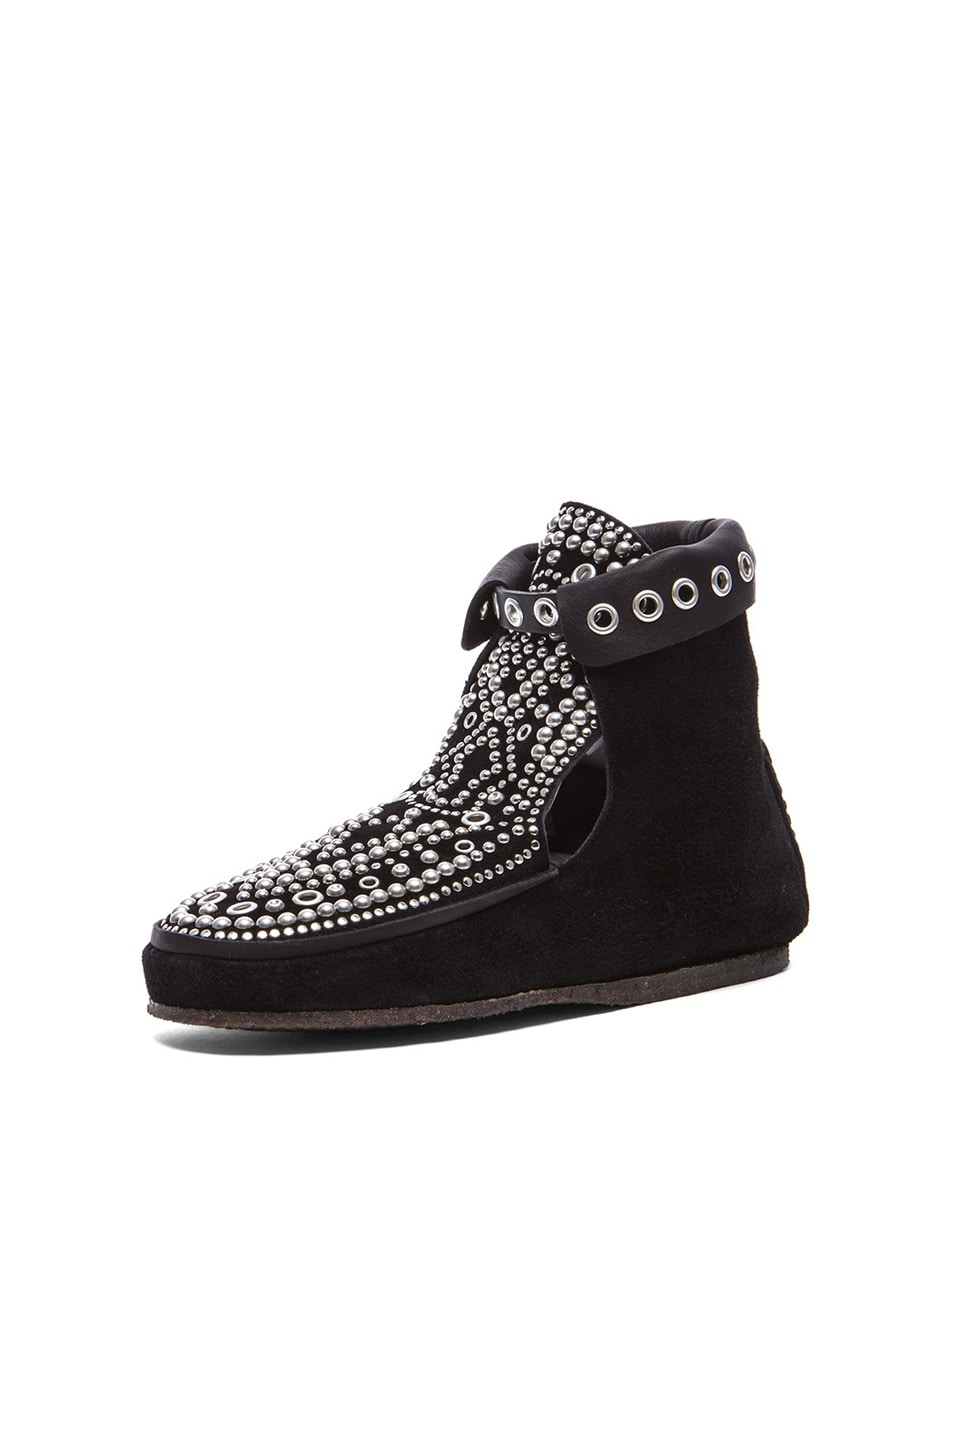 Image 2 of Isabel Marant Morley Rivet Calfskin Velvet Leather Moccassins in Black